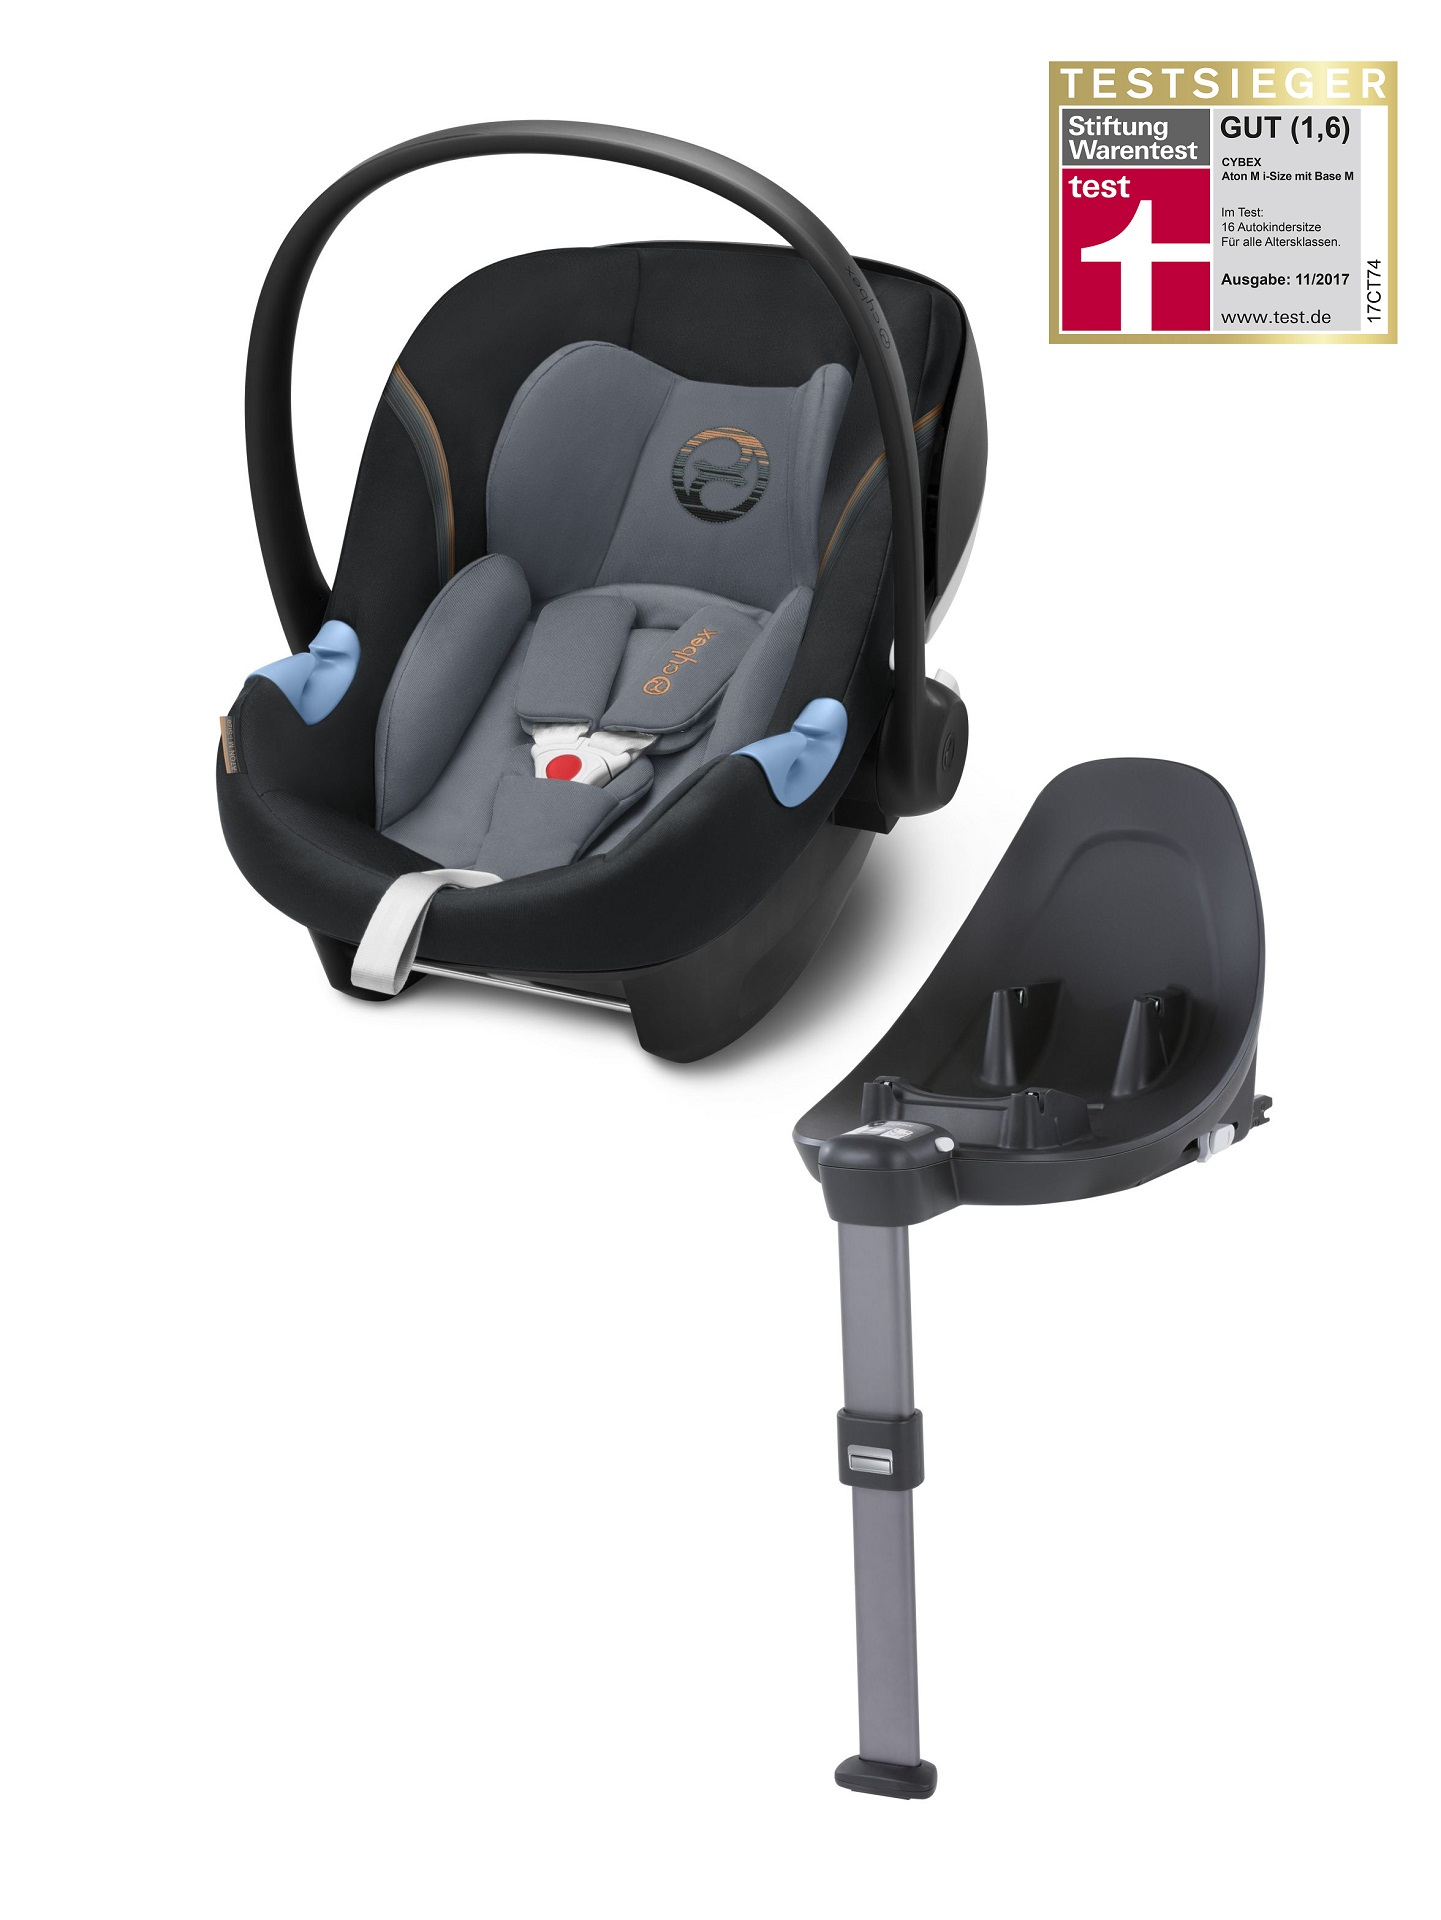 cybex infant car seat aton m i size including base m 2018. Black Bedroom Furniture Sets. Home Design Ideas